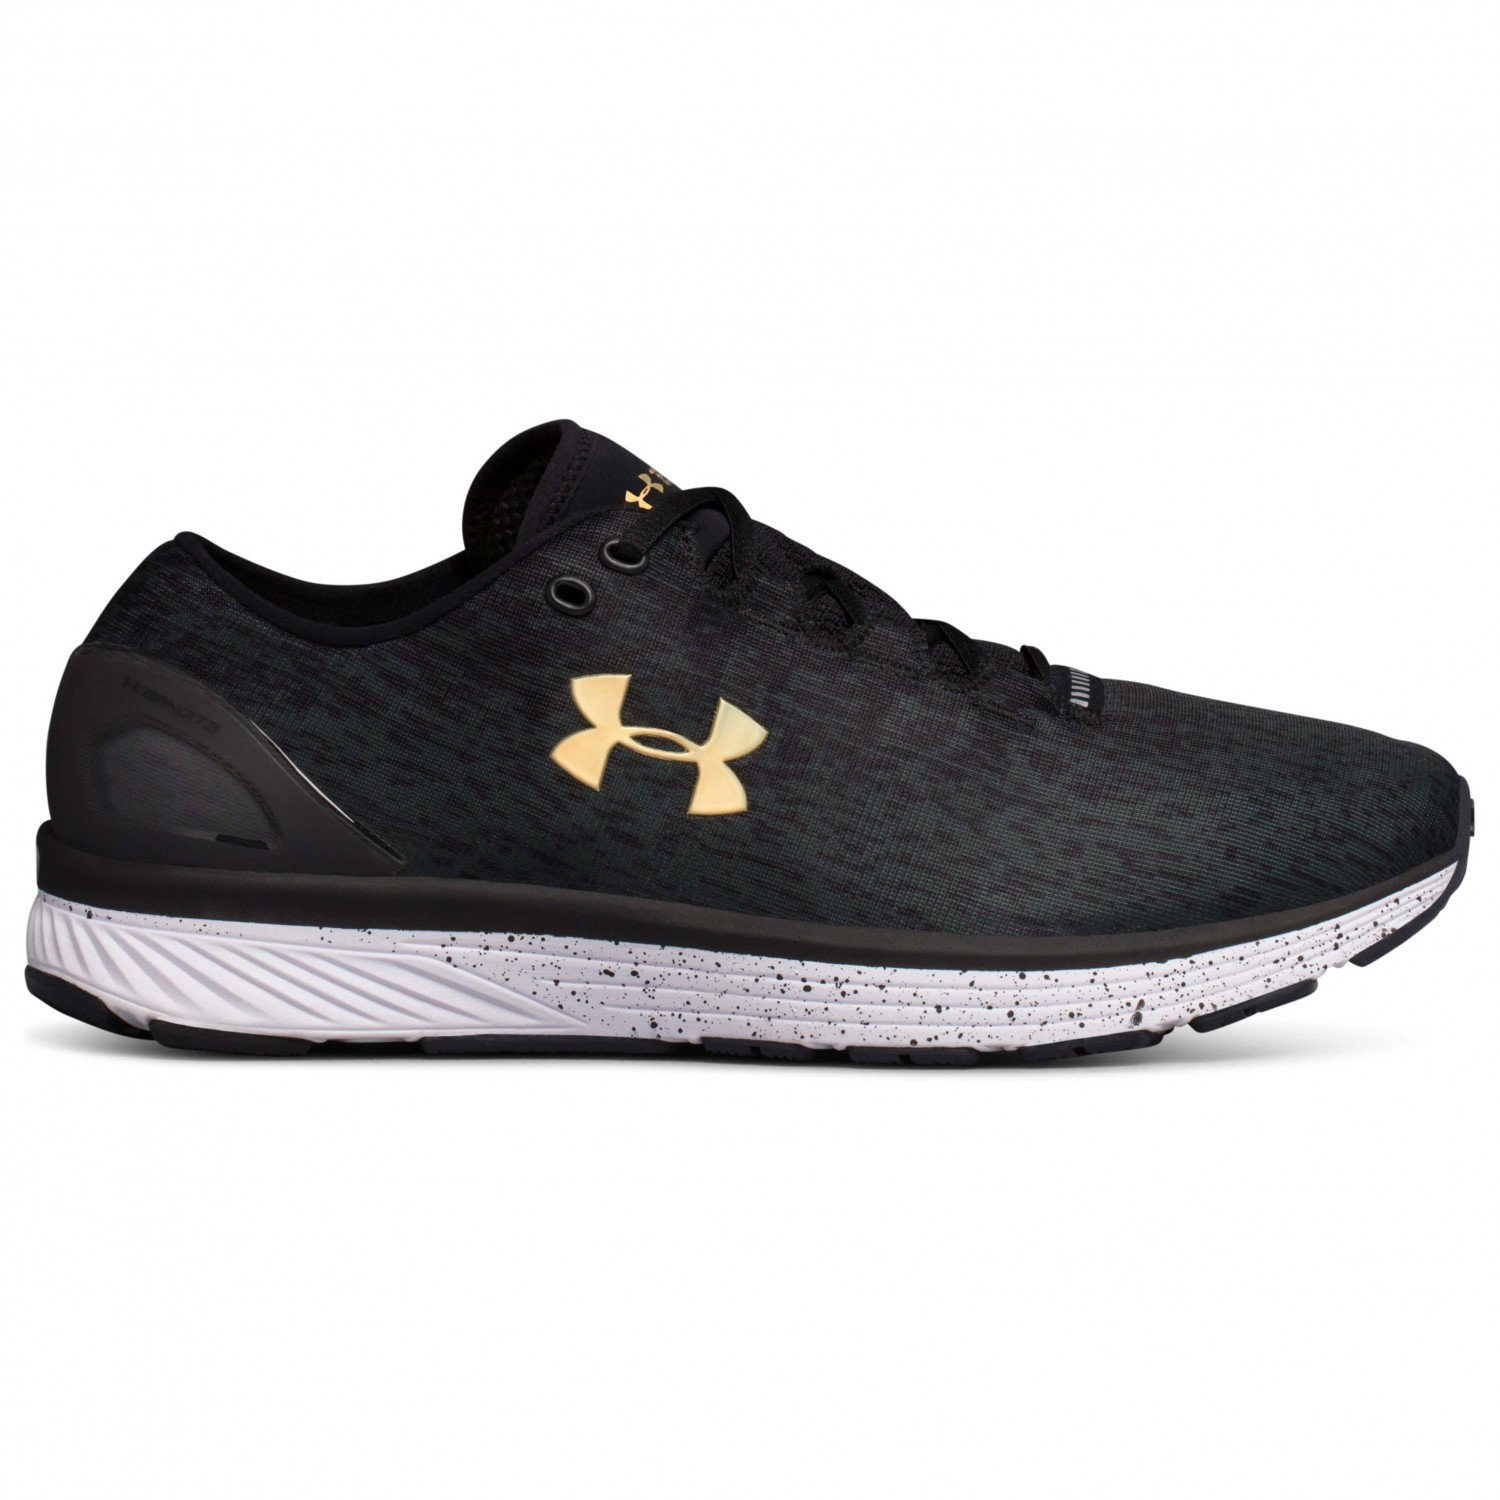 Under Armour - Charged Bandit 3 Ombre - Fitnessschuh Black / Anthracite / High / Vis Yellow